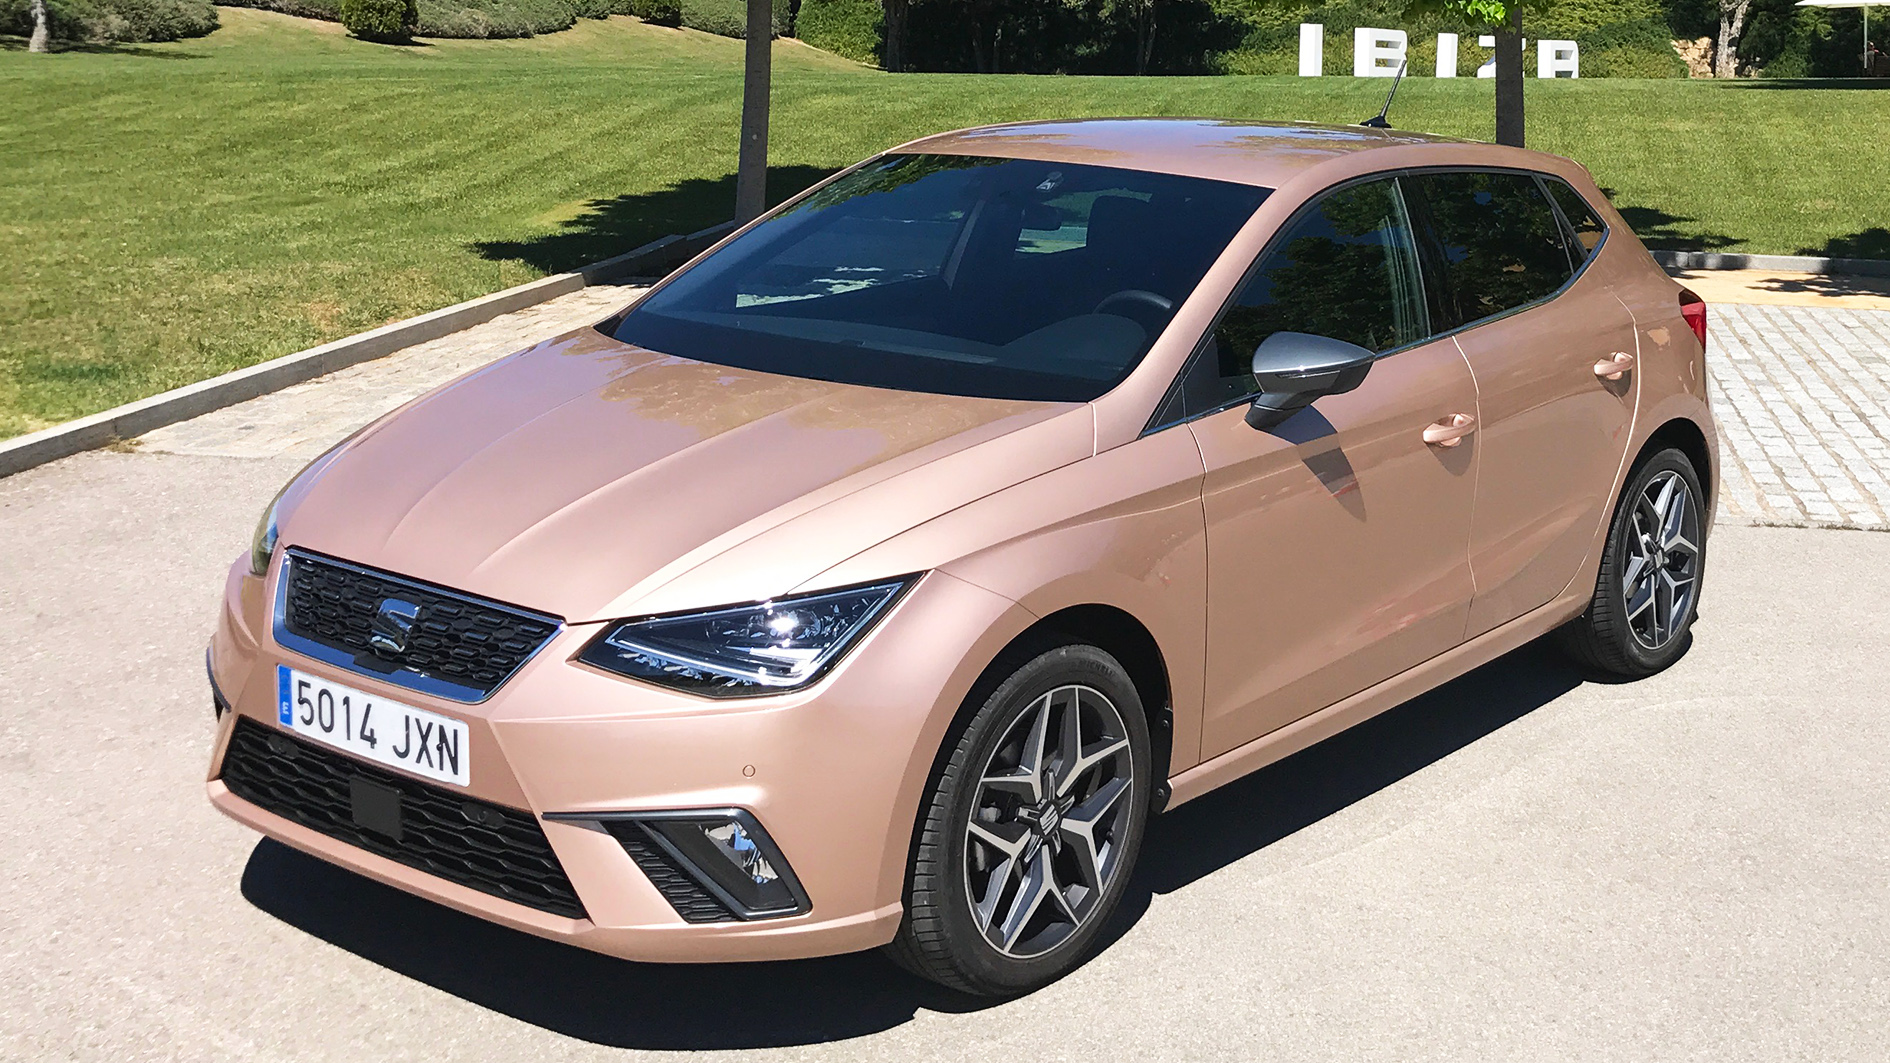 seat ibiza 1 0 tsi 115 ps review driving report 2017 test car english. Black Bedroom Furniture Sets. Home Design Ideas